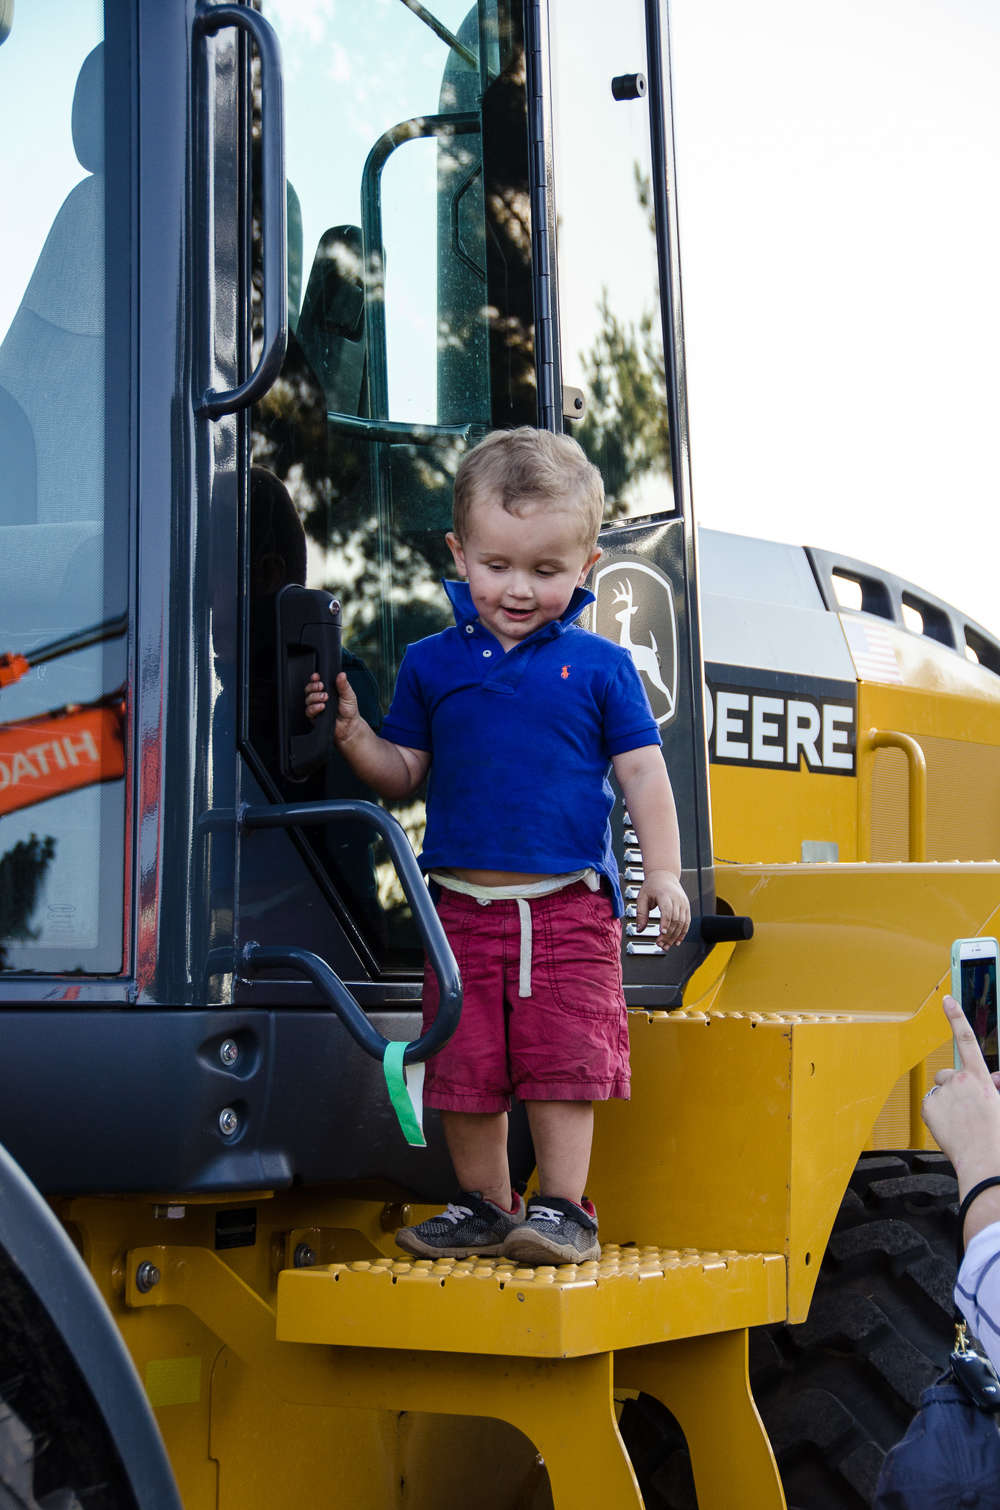 Future Operator?  Contractor?  Engineer?  Either way, guests of all ages enjoyed the day at W.I. Cark's customer appreciation day.